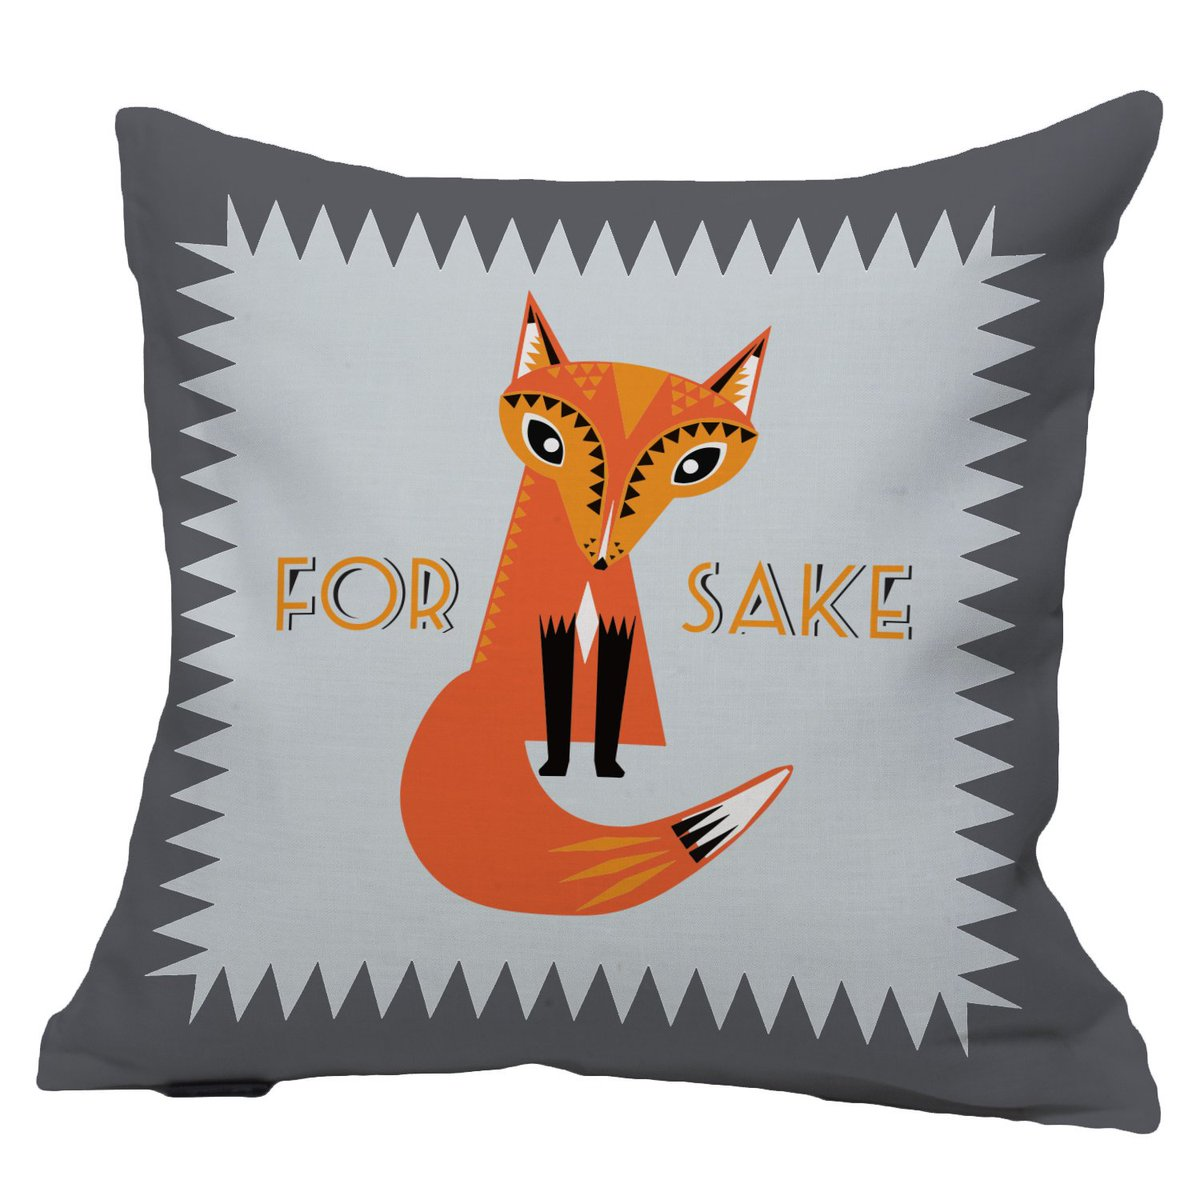 Are you a clever fox?    Spend £25 today & claim £5 off your order, simply pop the discount code 5OFF25 in at the checkout...  Shop Now https://www.lovekates.co.uk/   #cards #gifts #onlinecardshop #lovekates #discount #sale #foxy